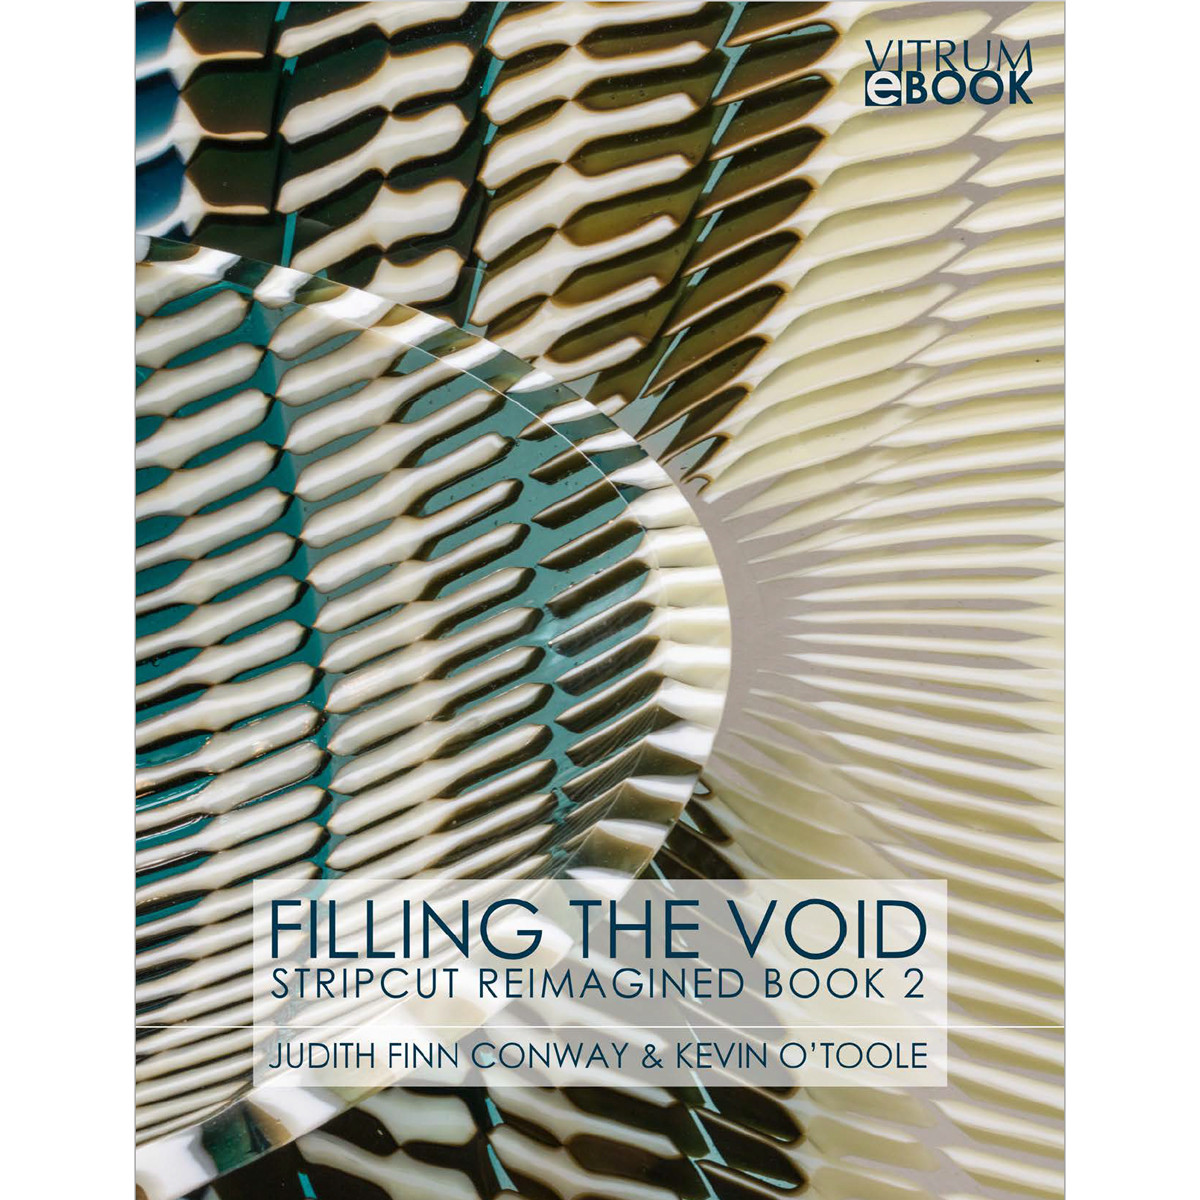 Ebook | Filling the Void - Stripcut Reimagined Book 2